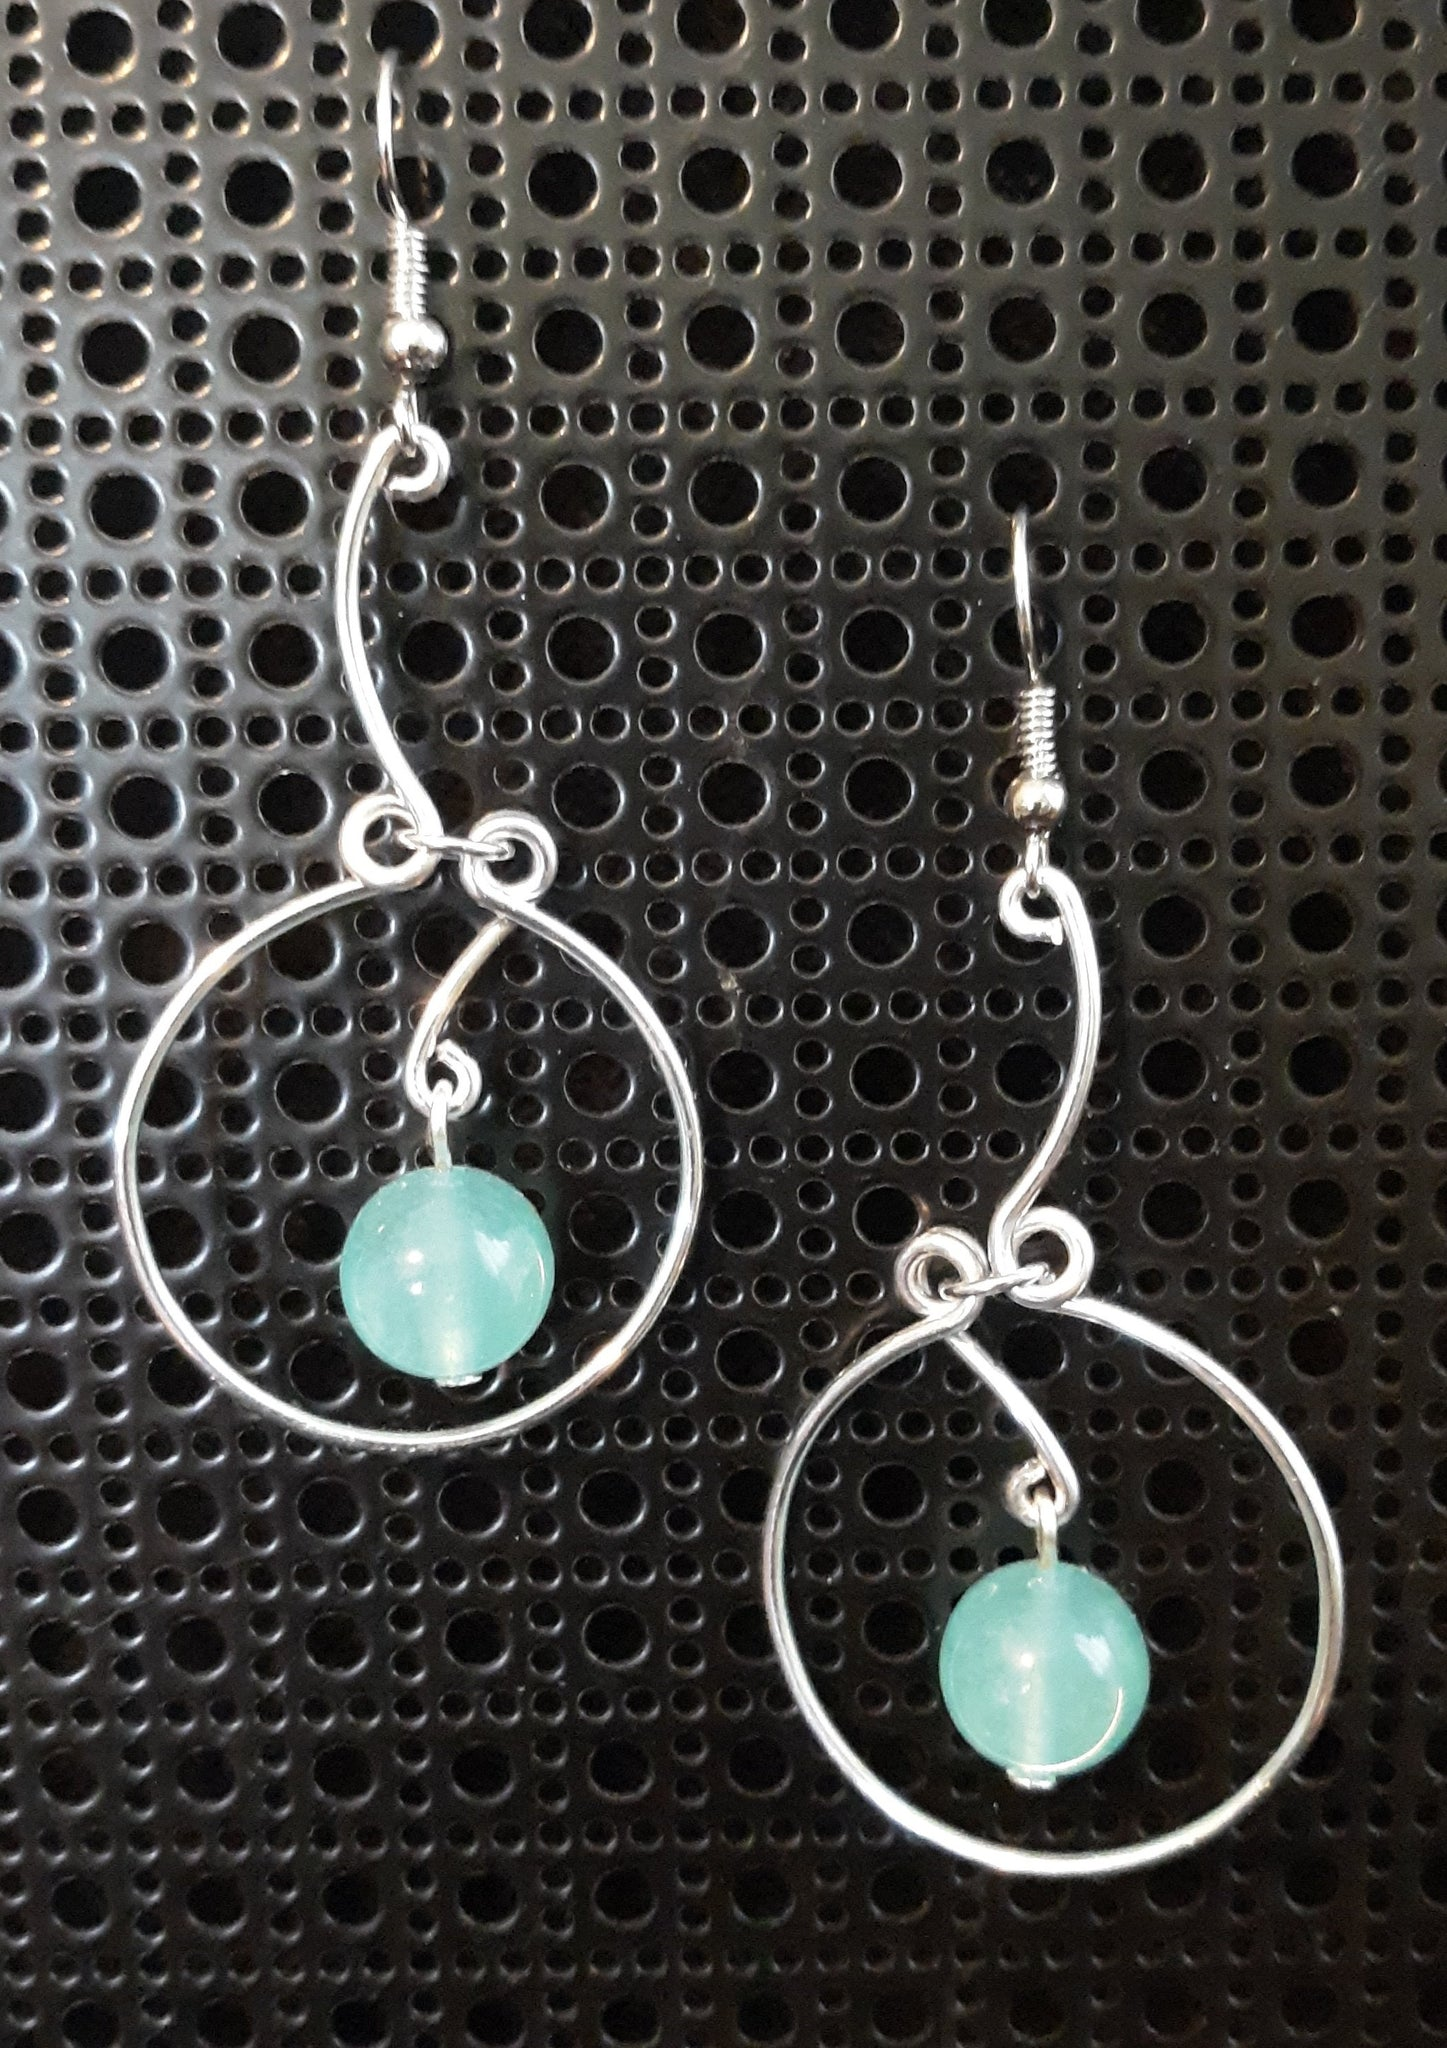 Handmade Aluminum Earrings with Aqua Gemstone Bead